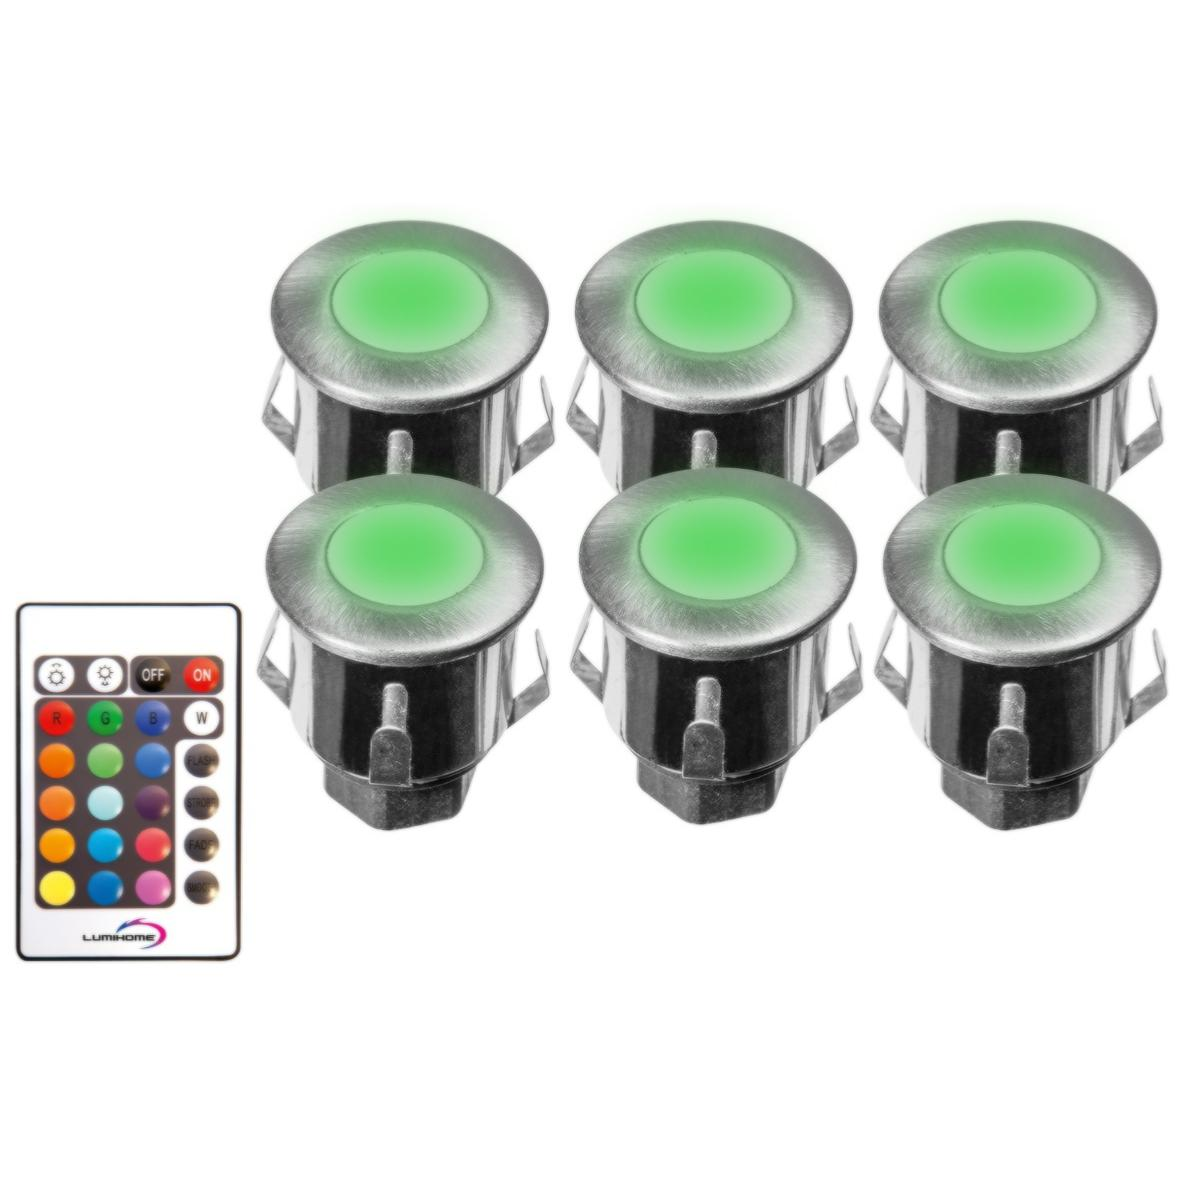 Spot terrasse piscine rgb 12v led ip67 kit de 6 spot led rgb for Spot encastrable plafond exterieur